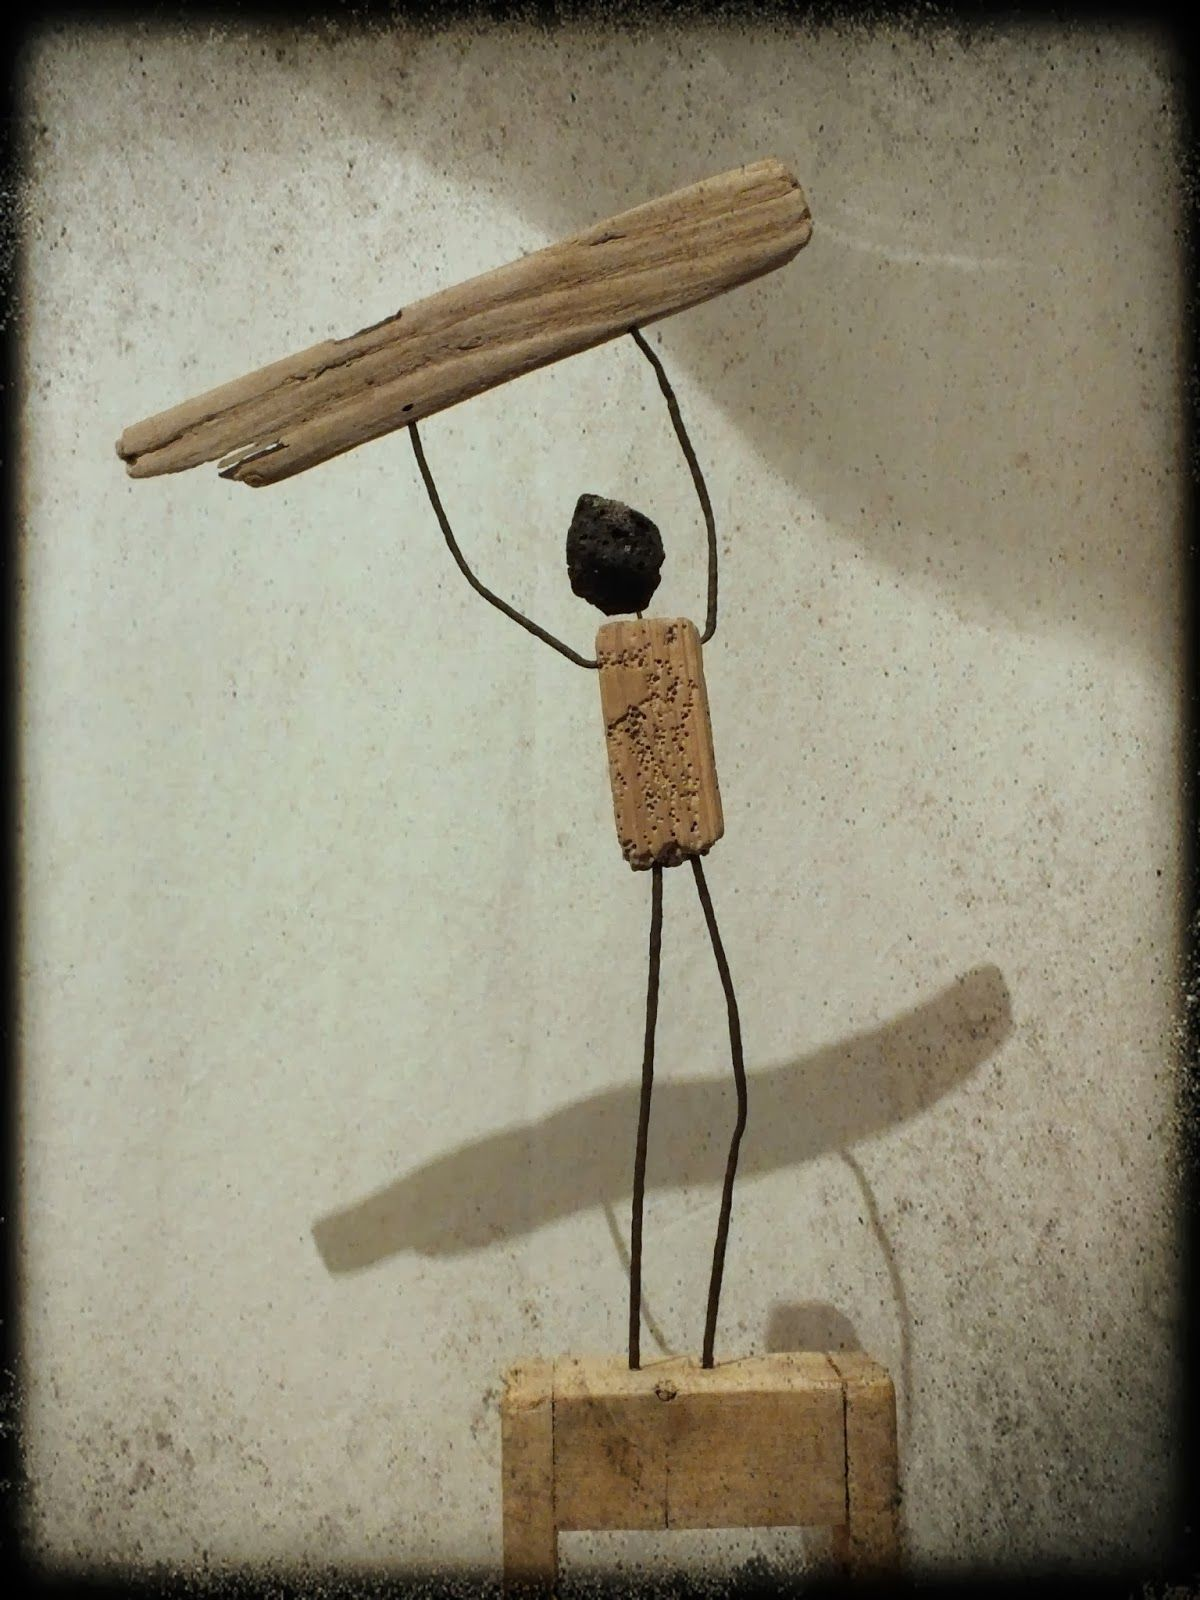 Charming creation objet en bois 6 mutoz inc cr ation for Creation objet en bois flotte